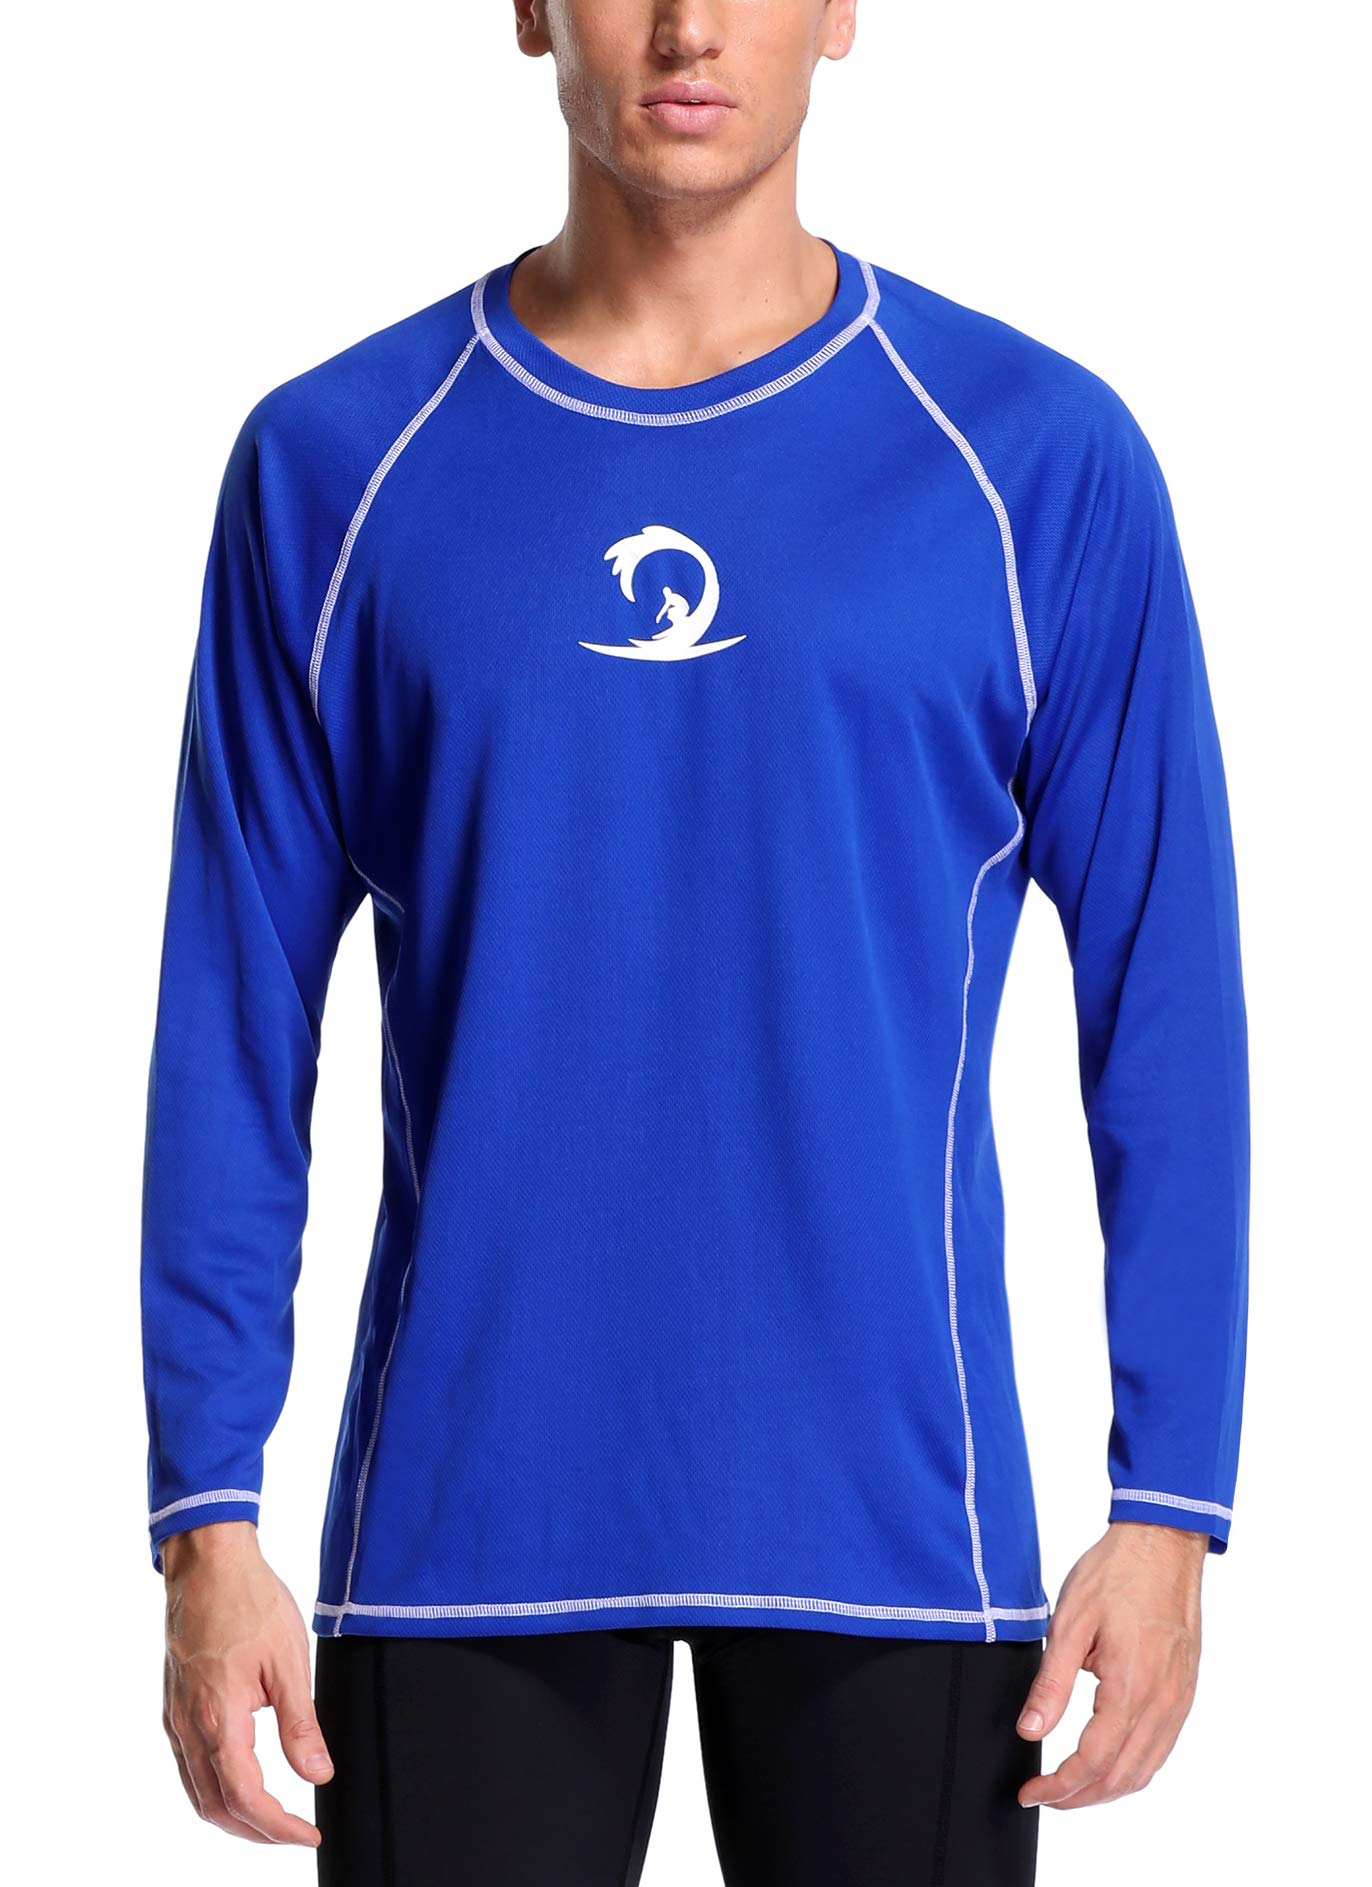 Sociala Men's UPF 50+ Rashguard Long Sleeve Workout T-Shirts L Blue by Sociala